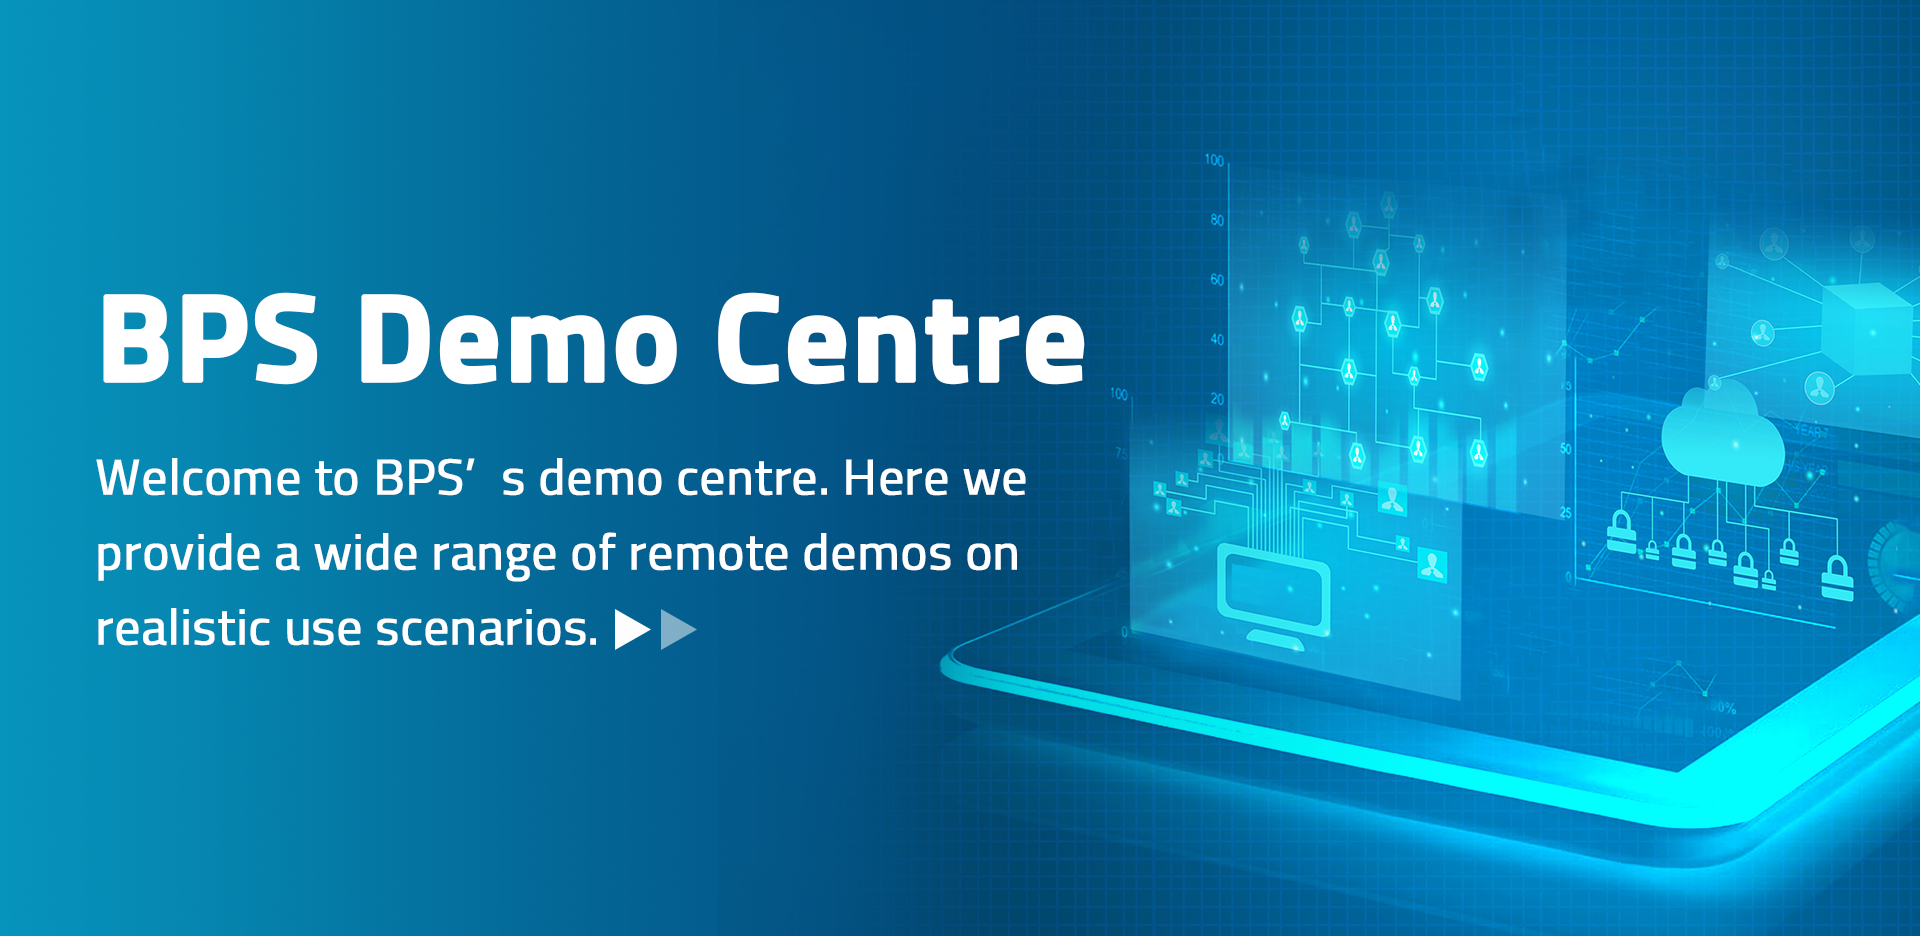 BPS Demo Centre